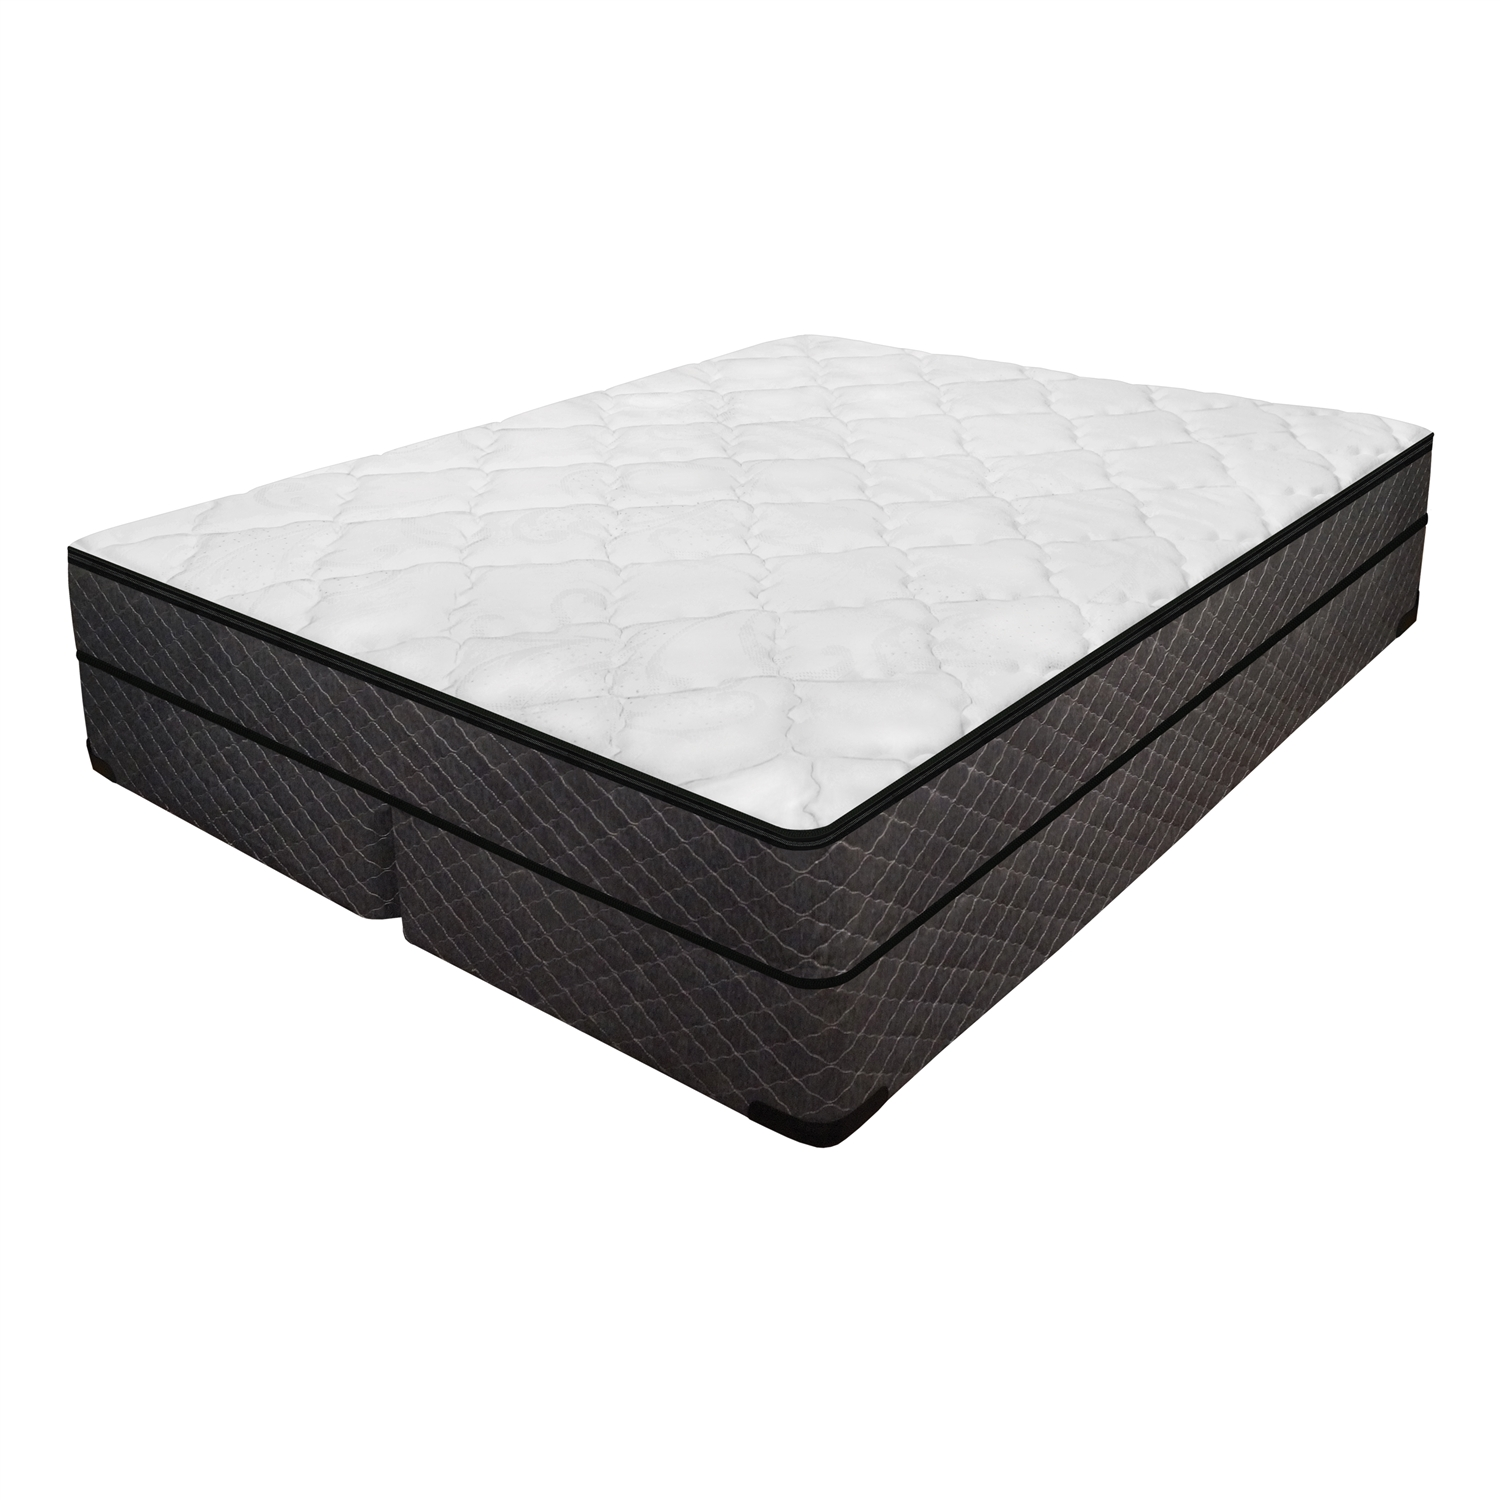 ls evolutions softside waterbed mattress